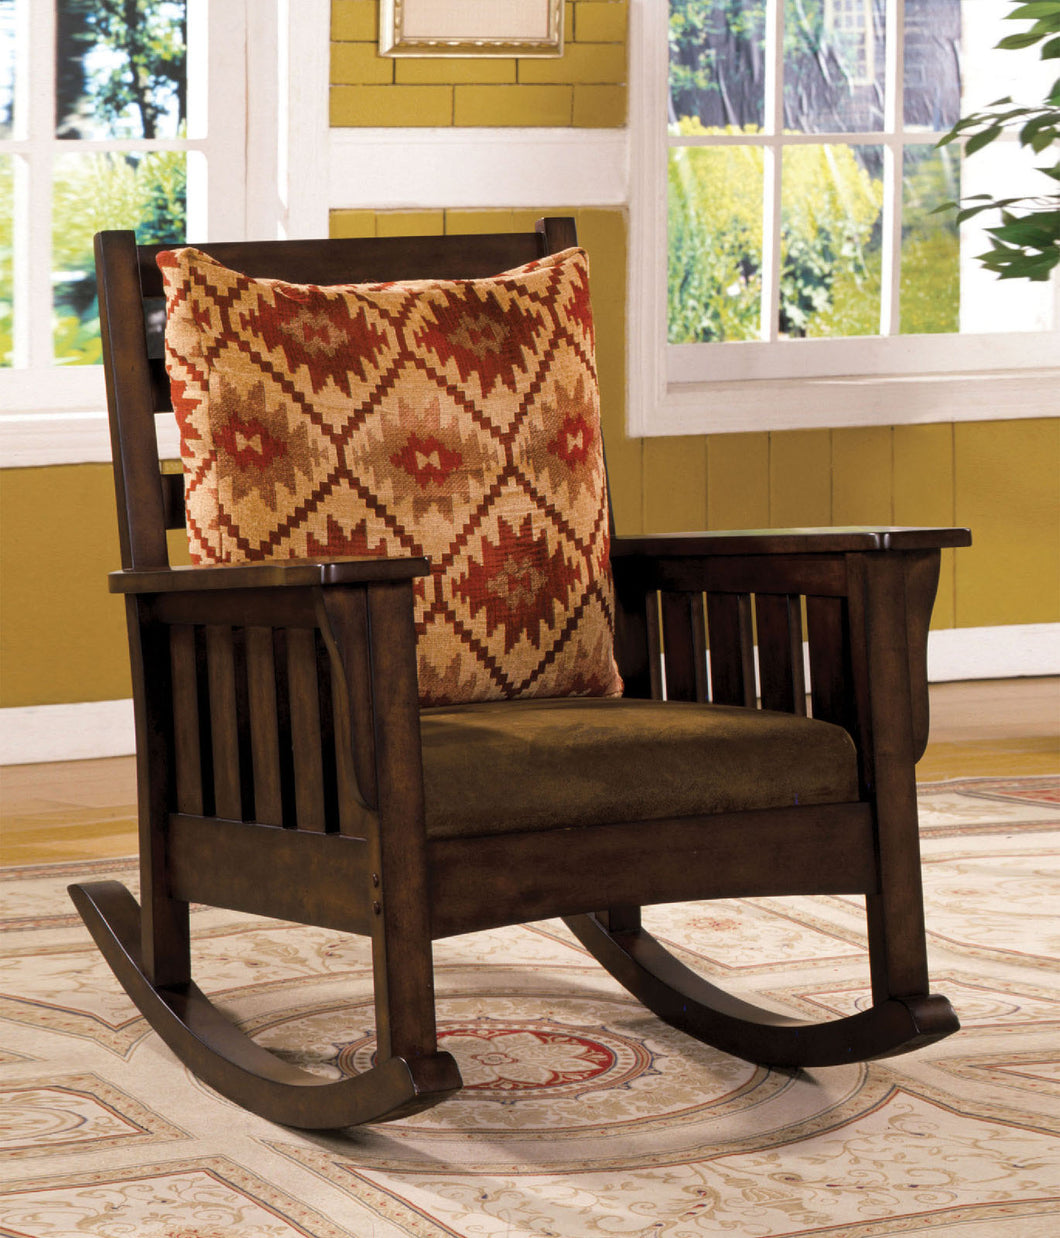 CM-AC6401 - Morrisville Mission Style Rocking Chair